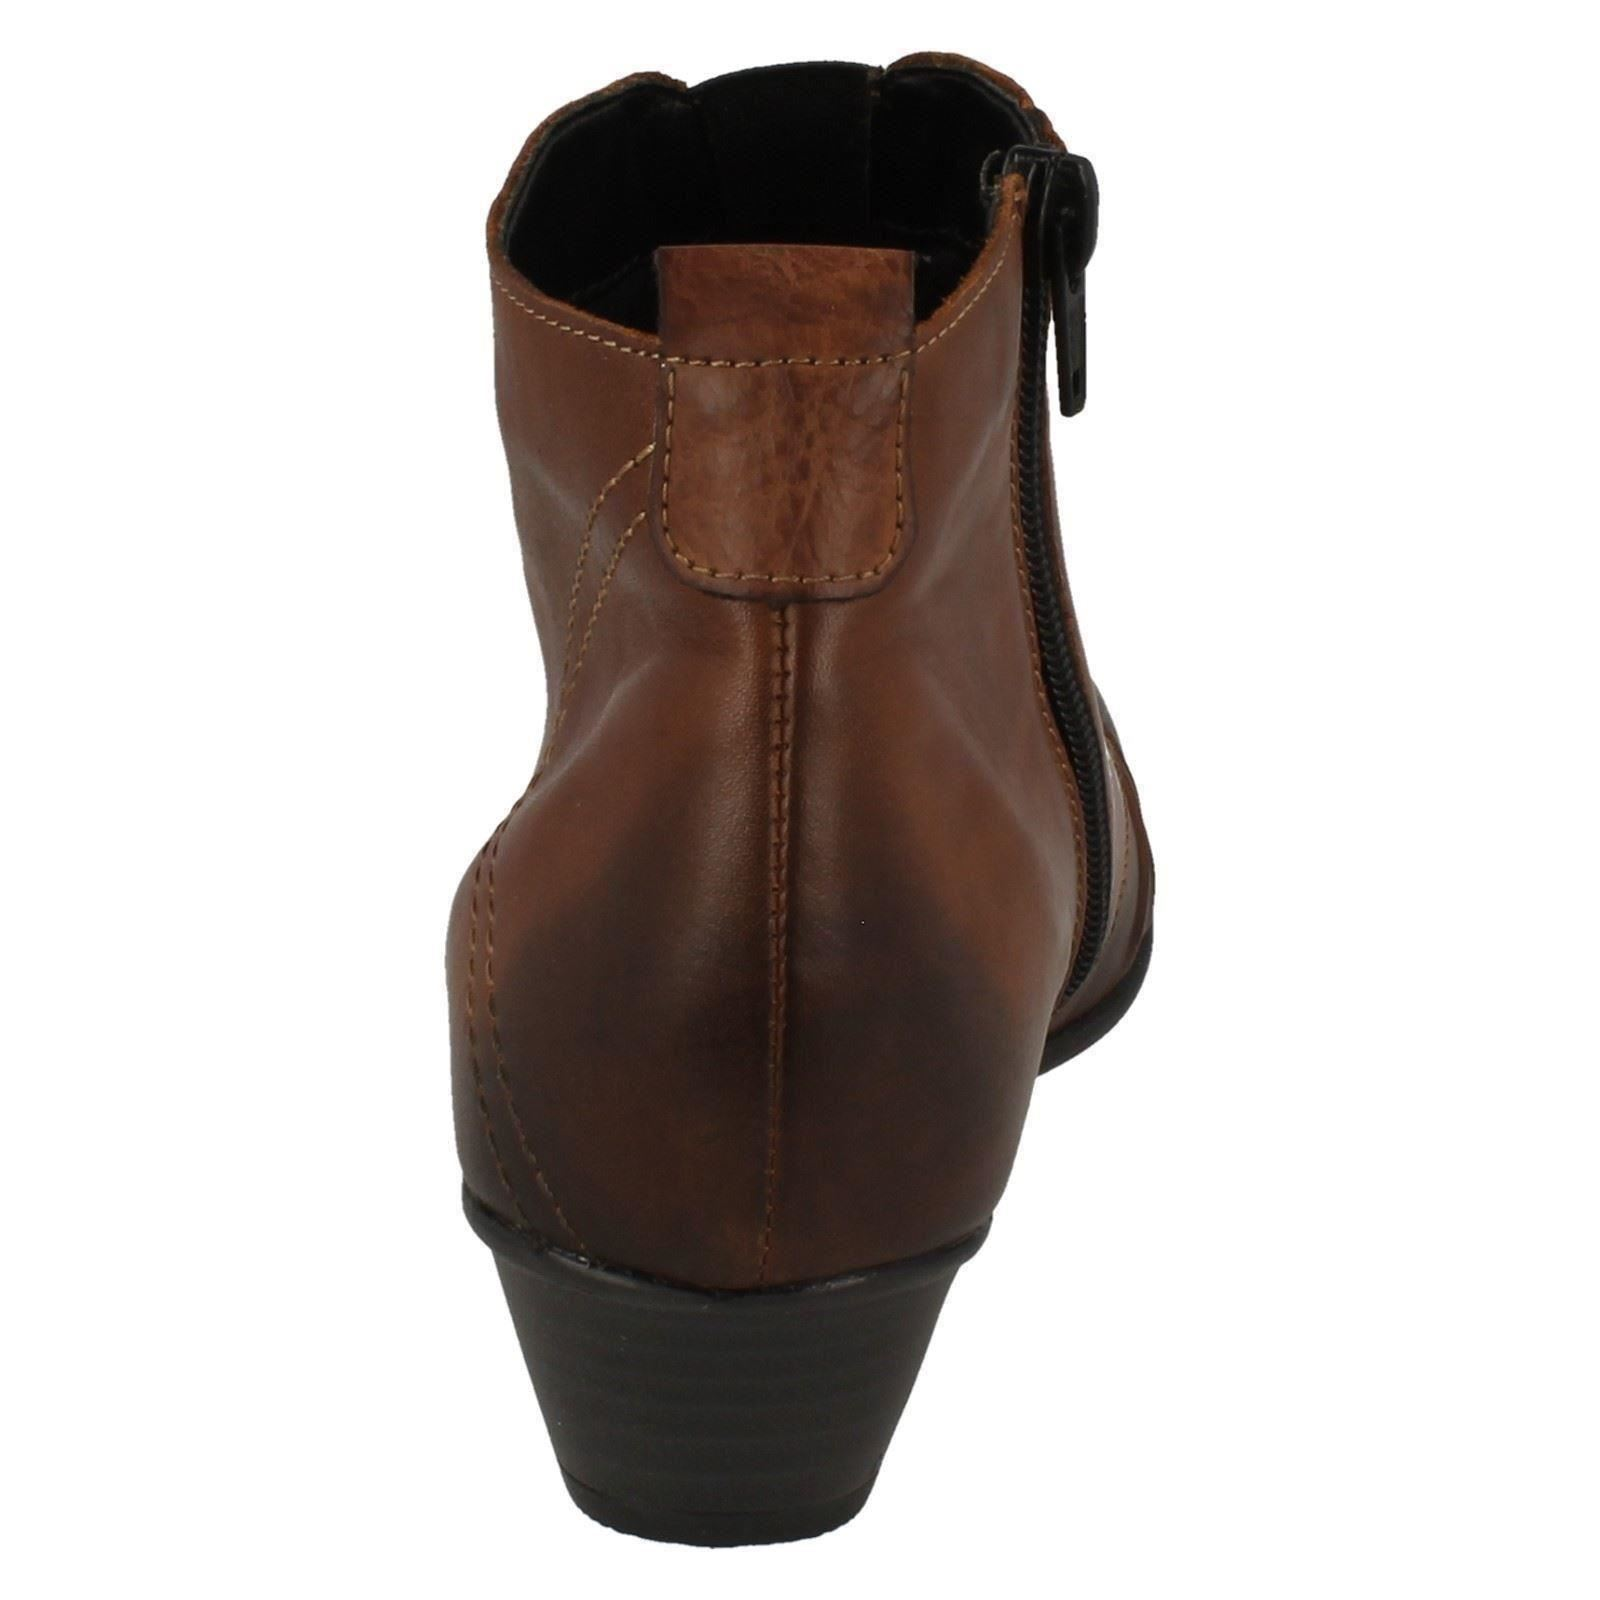 Boots Remonte Brown Label Ankle Ladies D7381 wvqx0PTPa